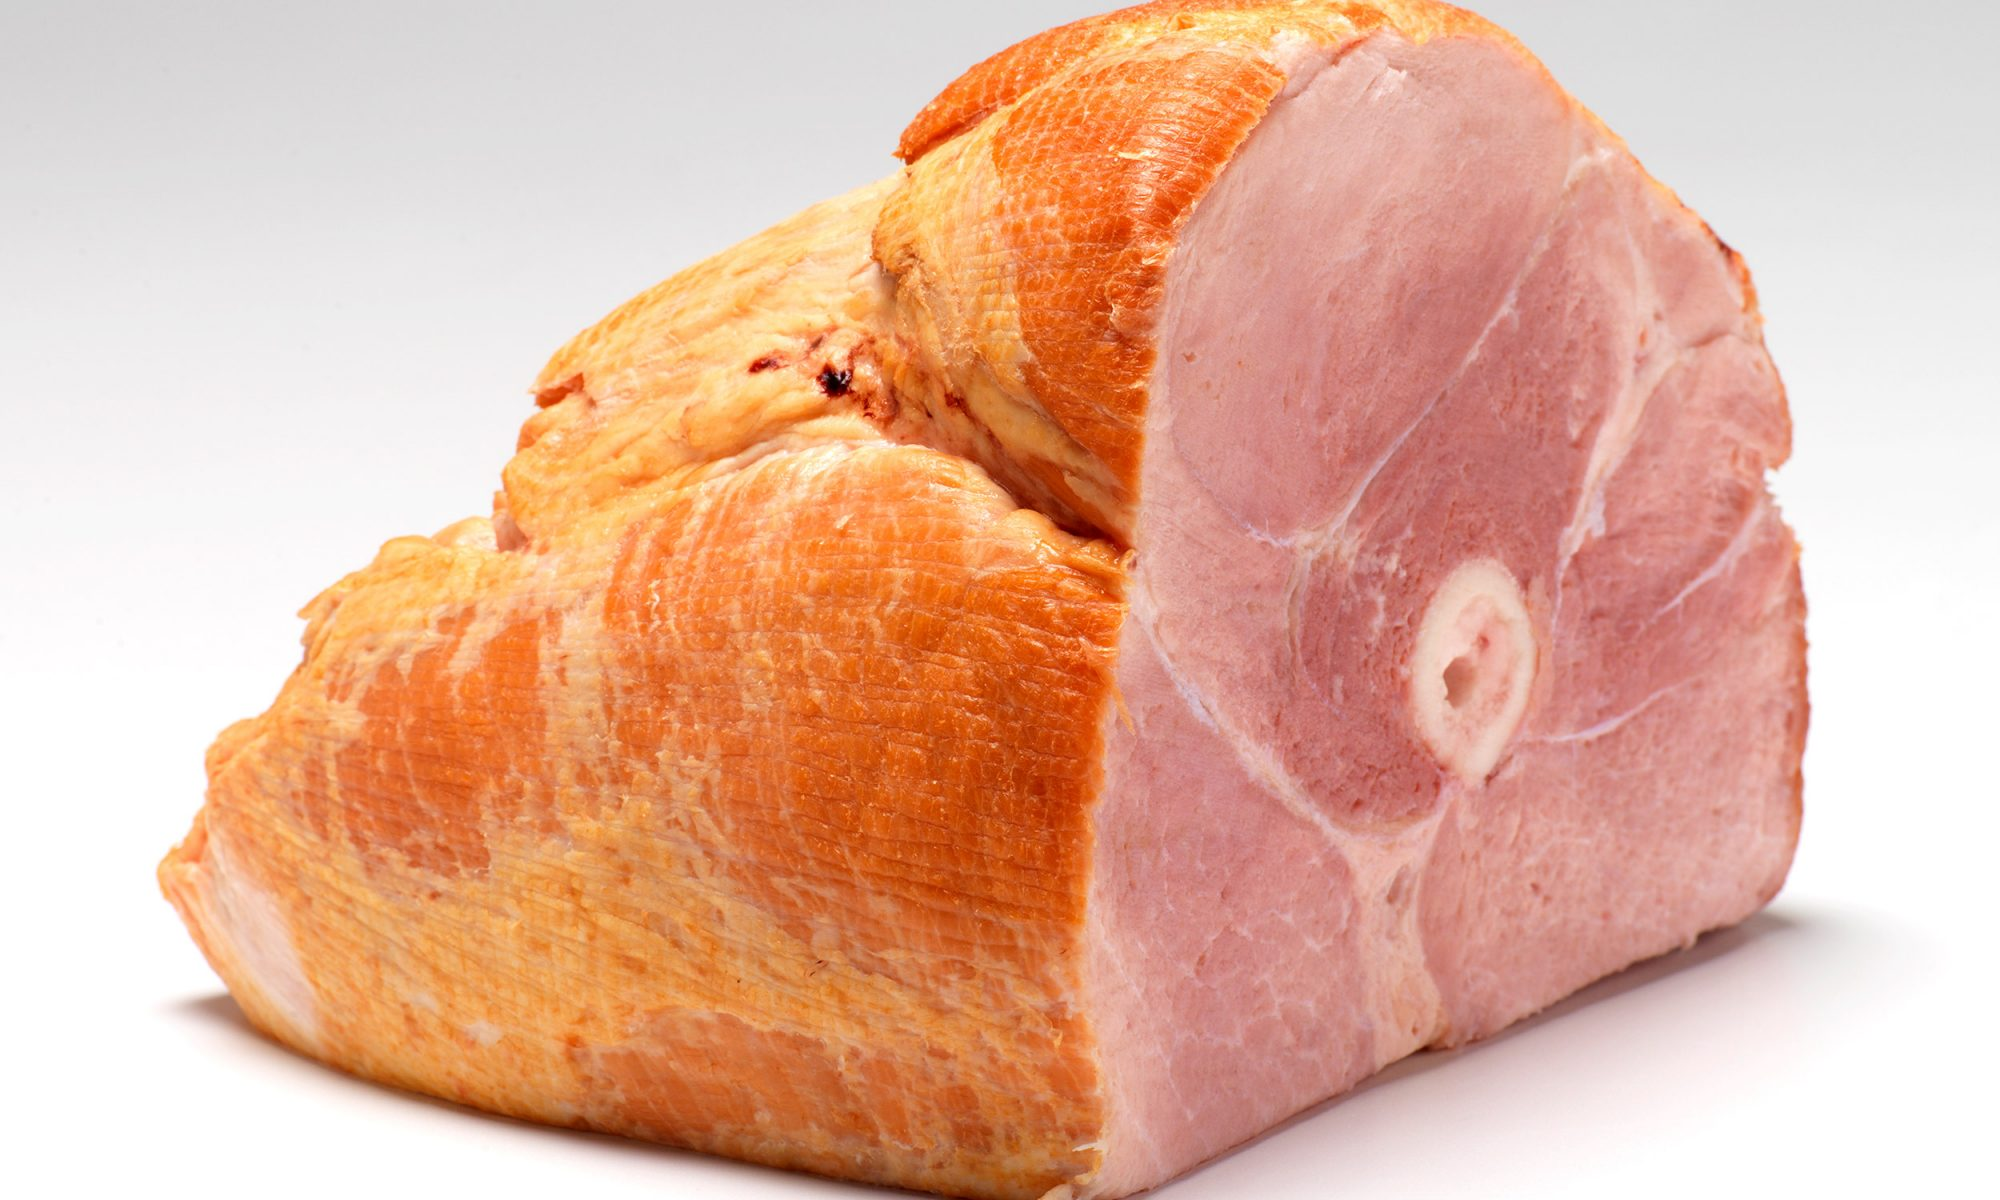 EC: Ham Sells for $600,000 at the Kentucky State Fair